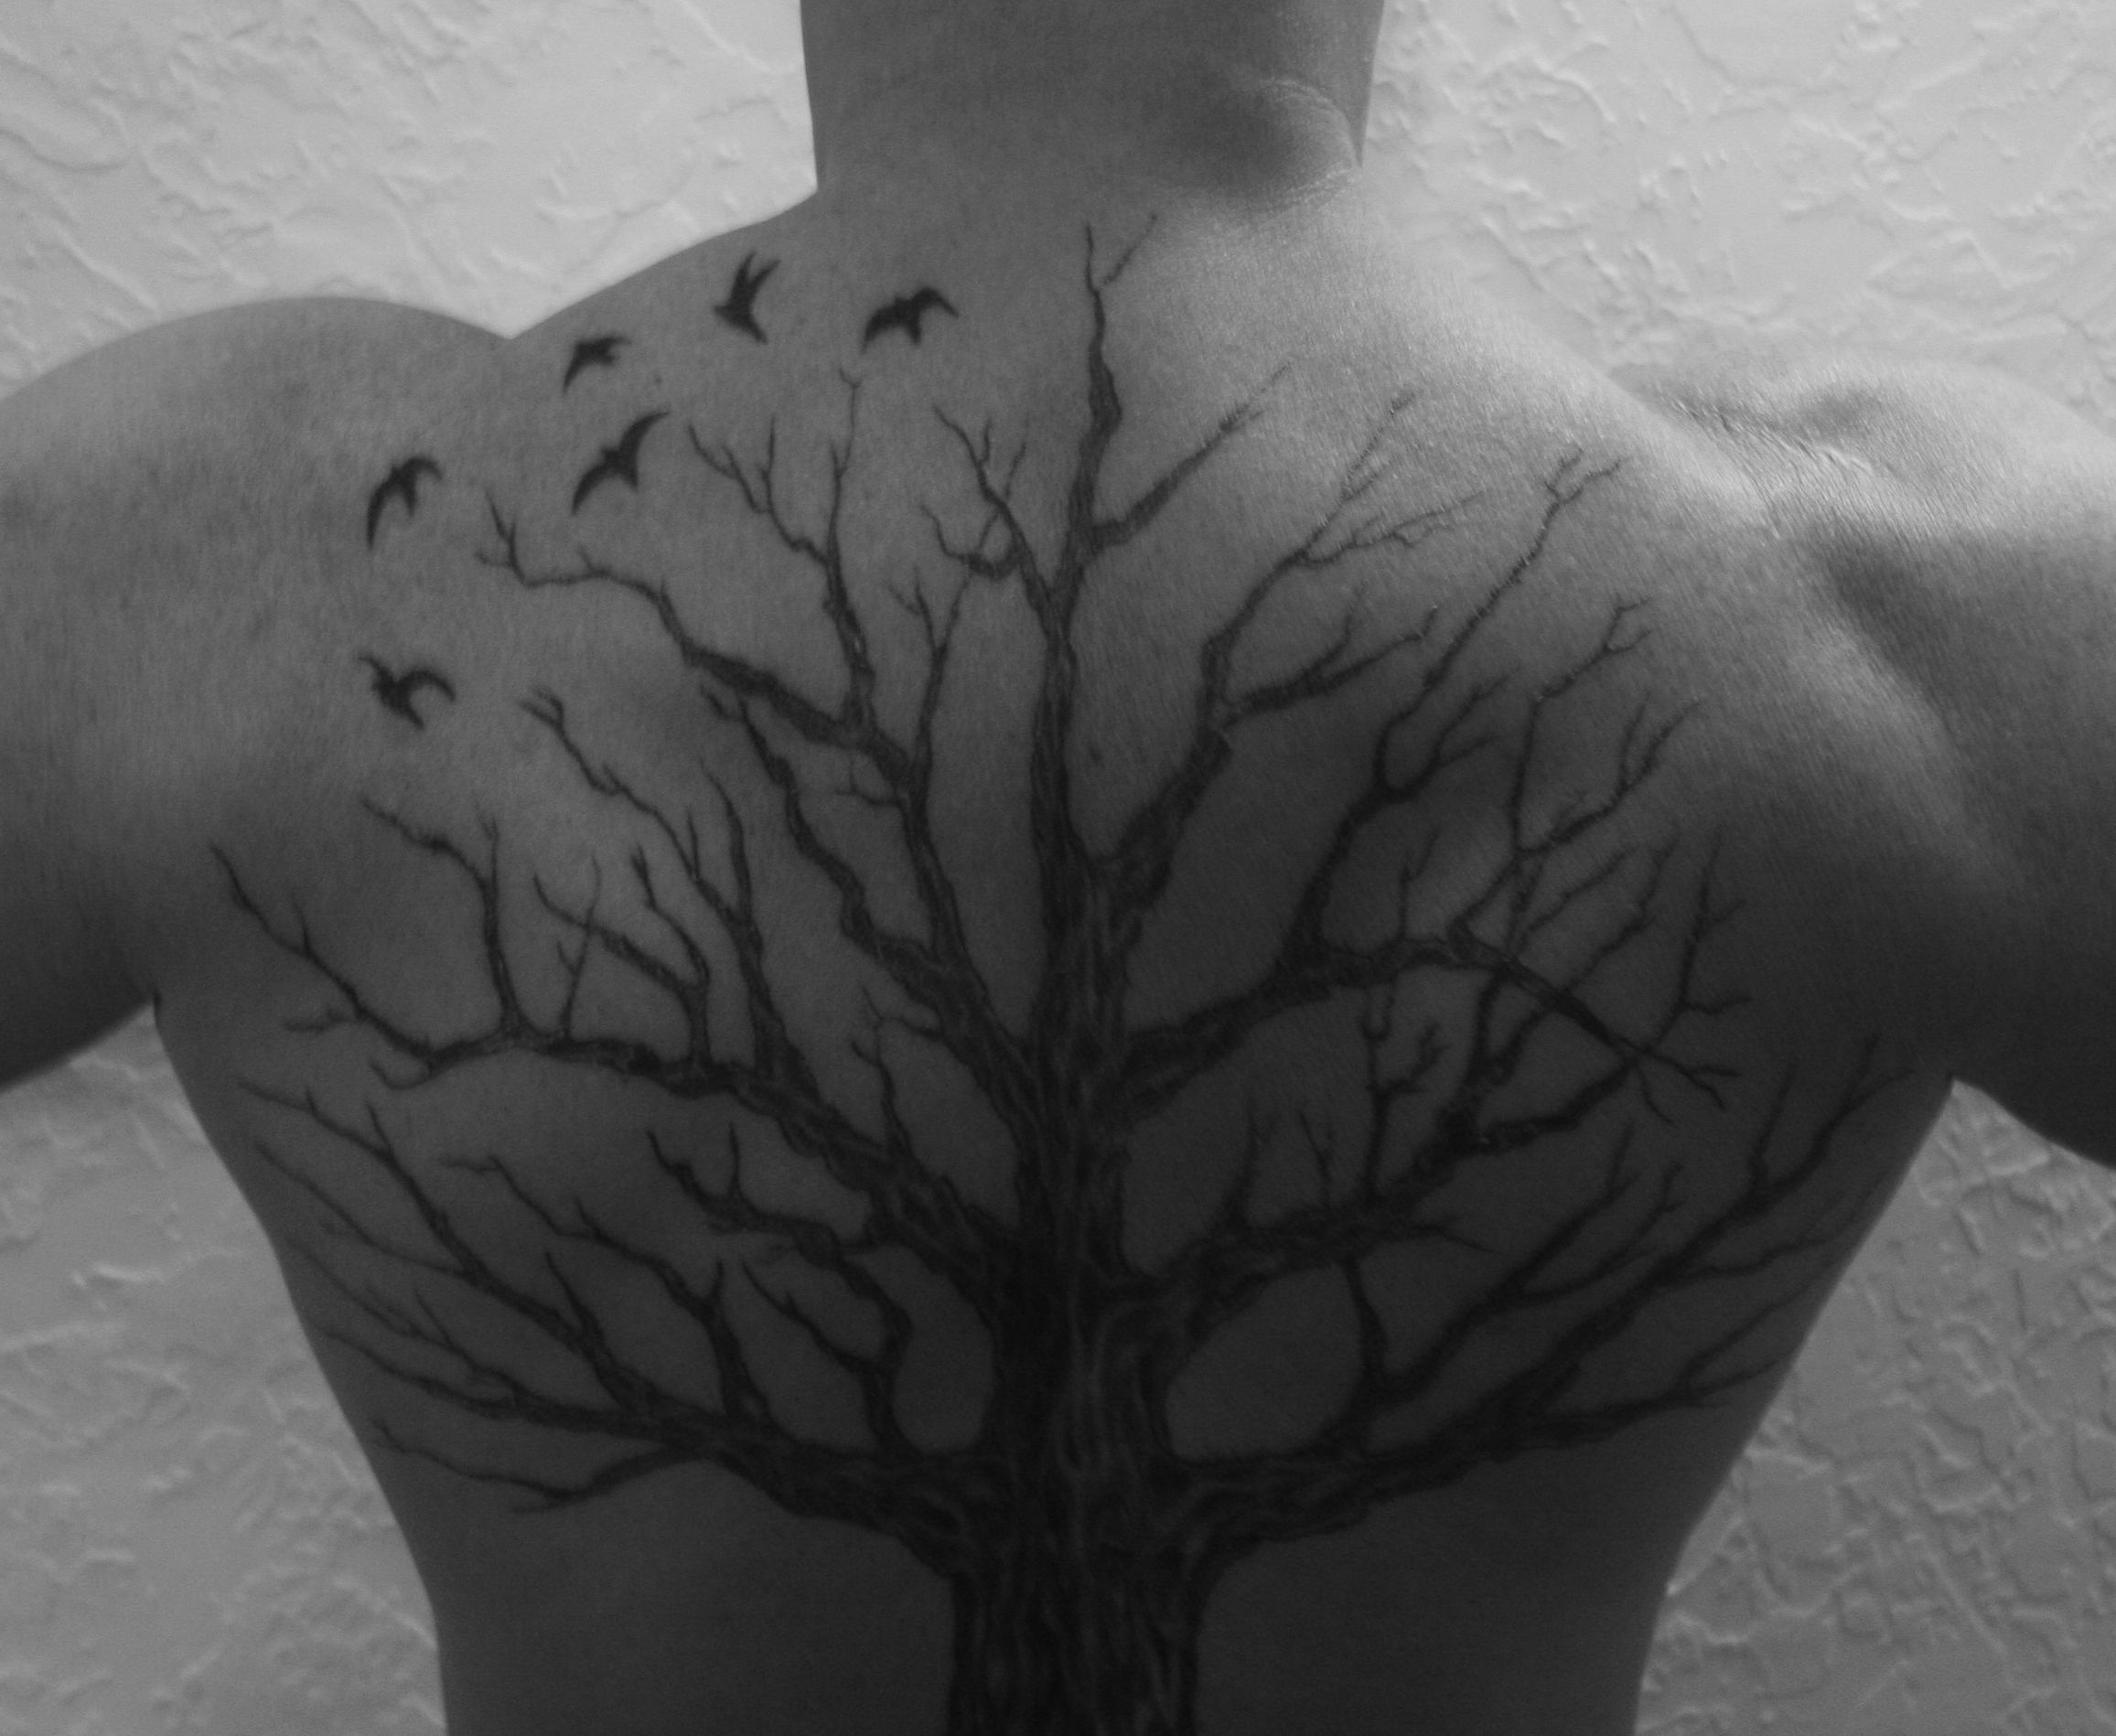 69 meaningful family tattoos designs mens craze - A Different Take On A Family Tree Each Bird Represents Lost Family Members